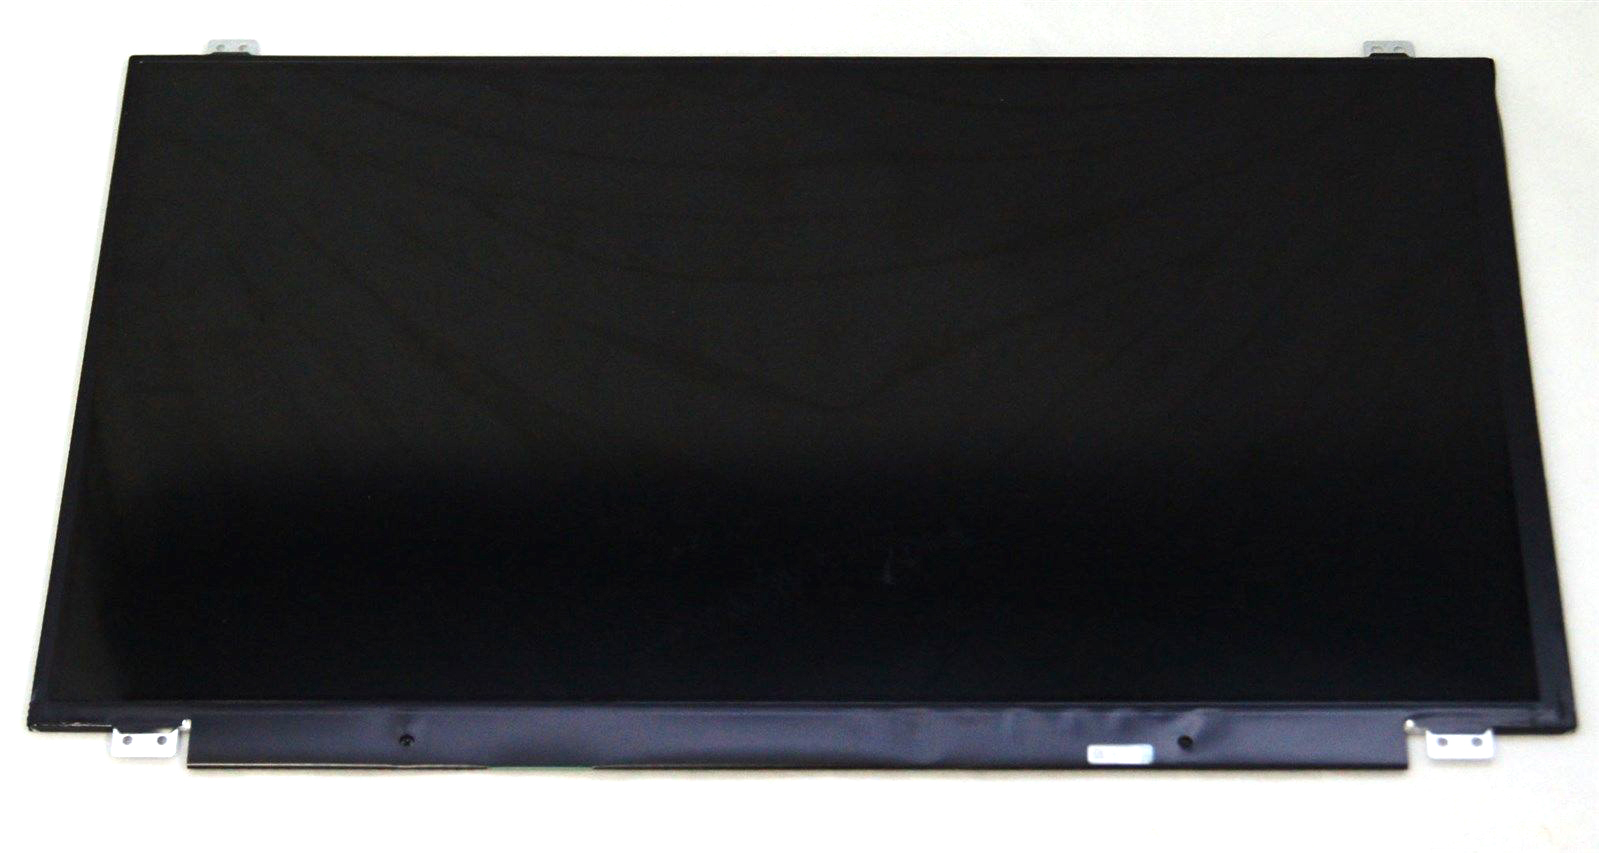 QuYing Laptop LCD Screen for Acer ASPIRE V5-571P V5-552PG E5-531 ES1-512 E5-572G E5-573 E5-573G SERIES (15.6 1366x768 30pin) korres бальзам стик д губ с экстрактом мандарина тон персик